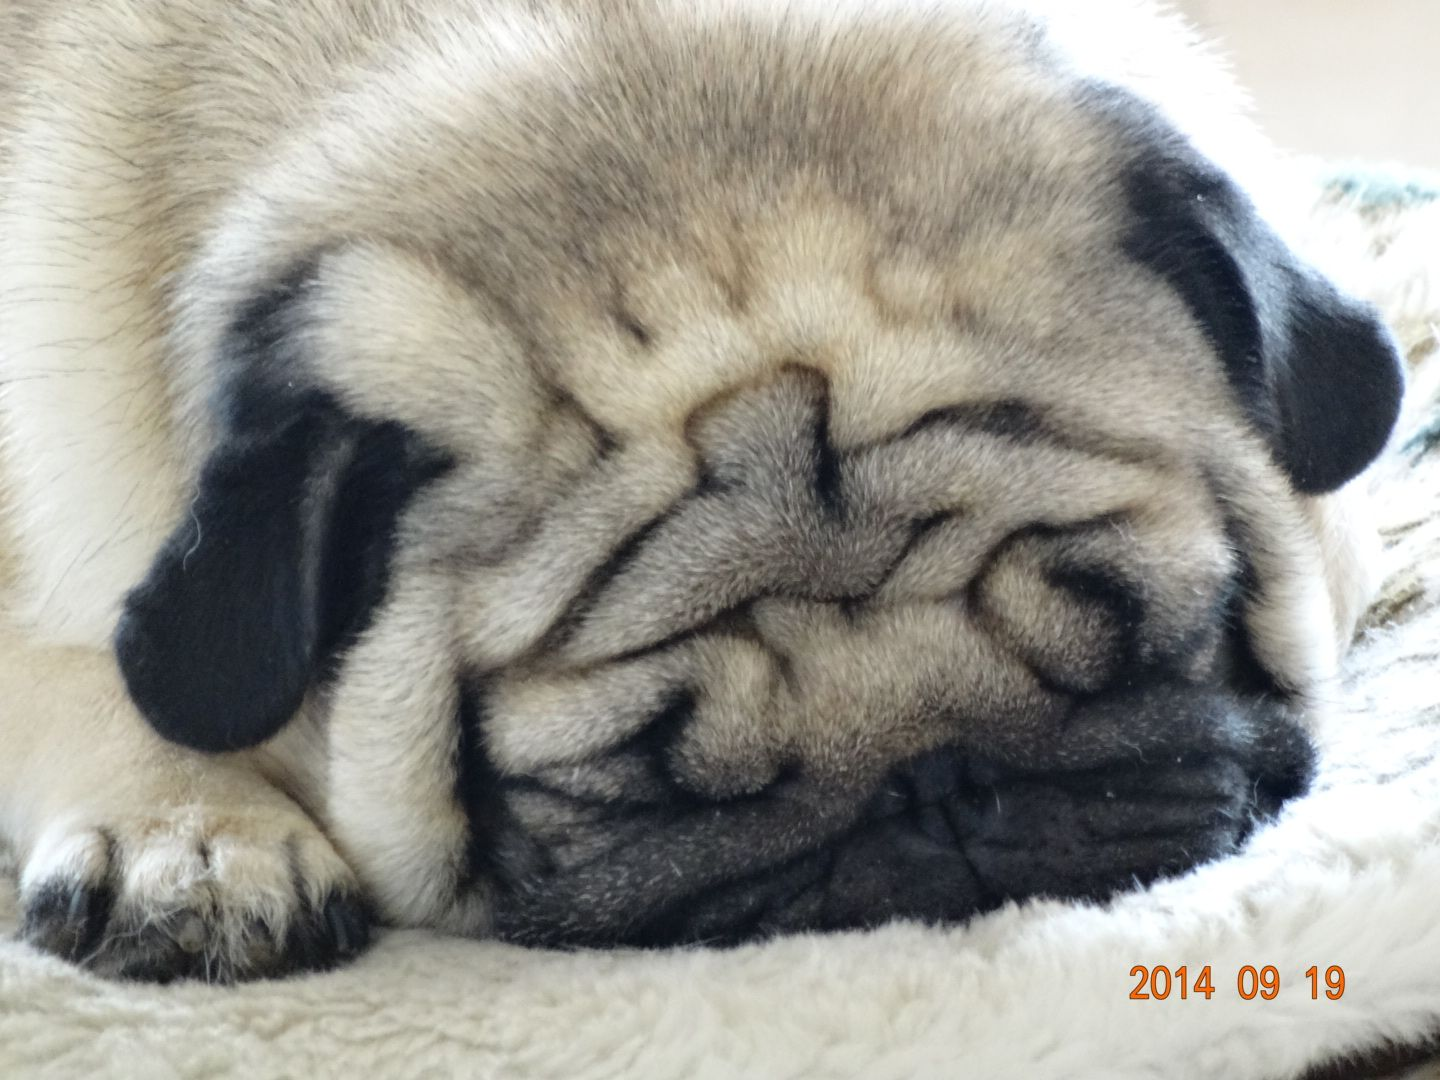 Pin By Kivonna Henry On Pugs Cute Animals Cute Puppies Puppies